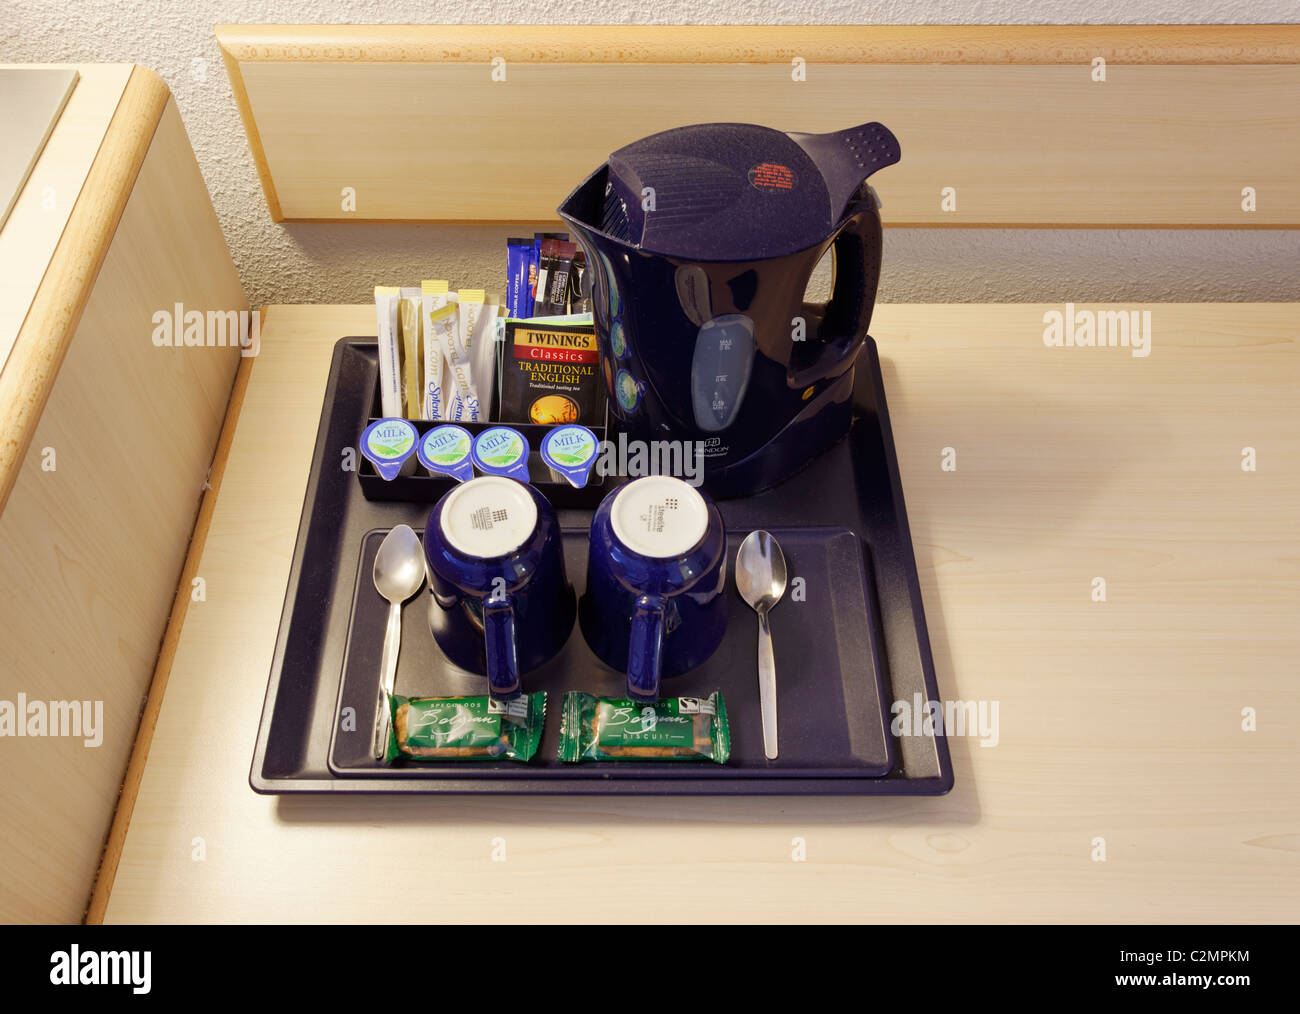 Tea and coffee tray in a hotel room, UK - Stock Image